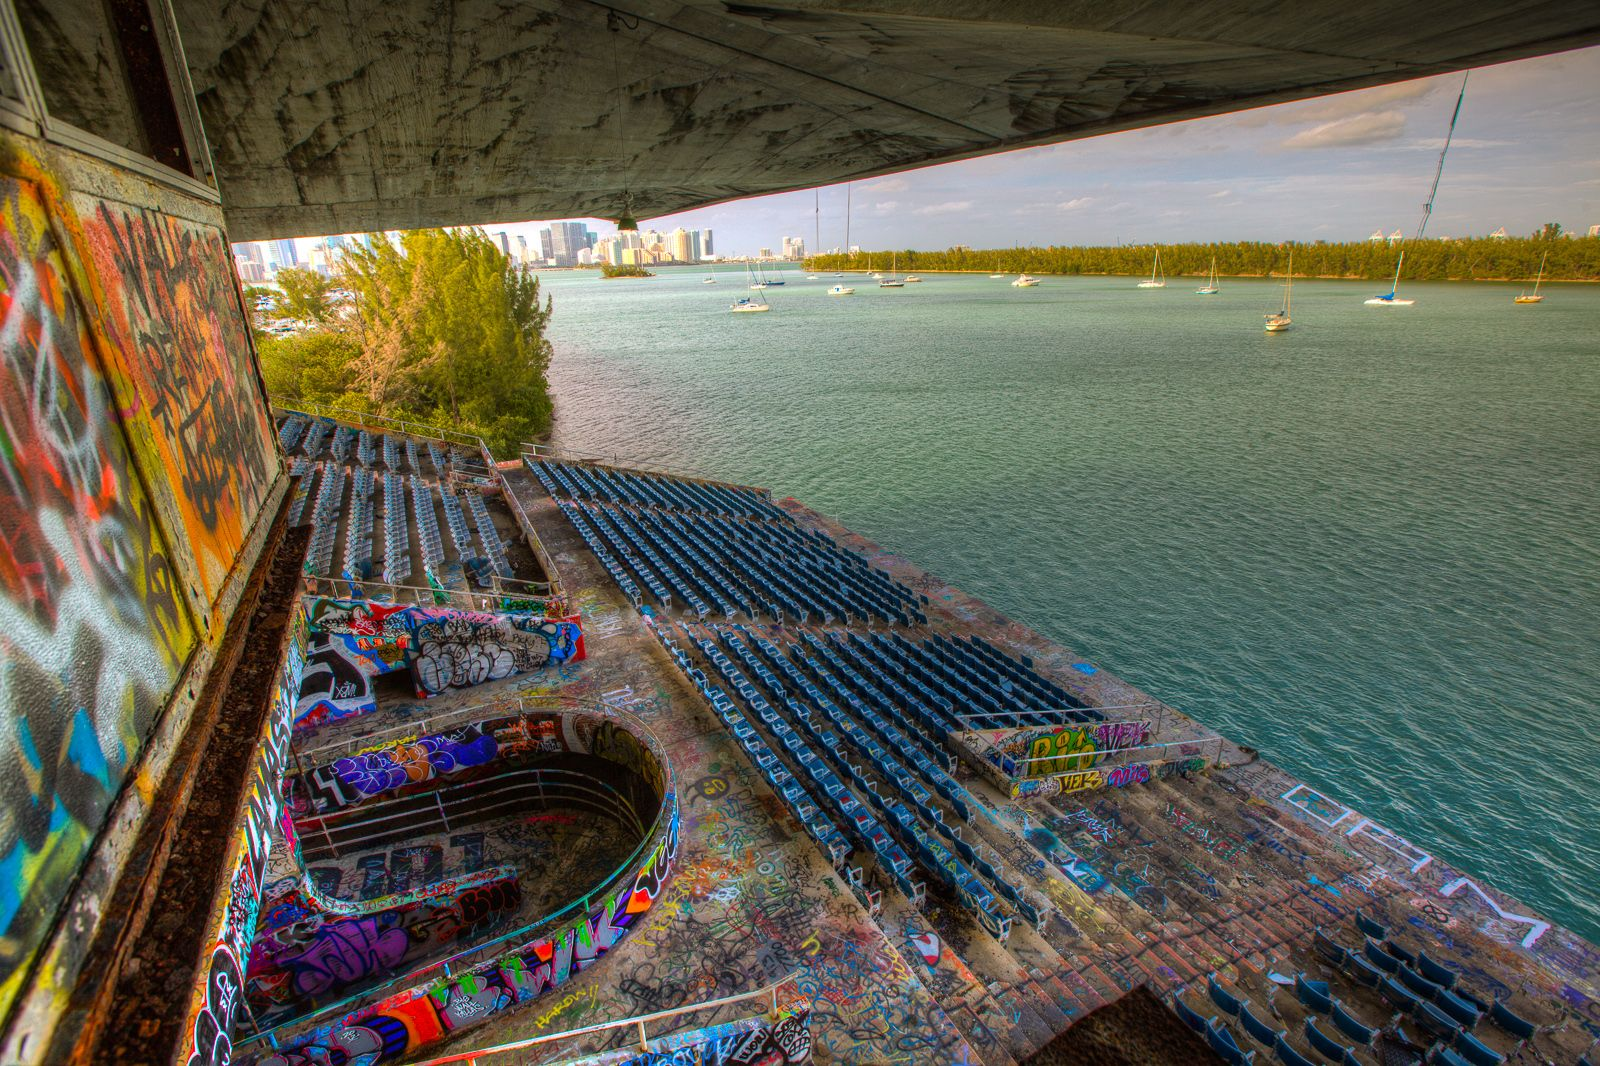 Miami Marine Stadium Abandoned Venue South Of Miami Florida Declared Unsafe After Hurricane Andrew It Was Closed Places In Florida Abandoned Places Places